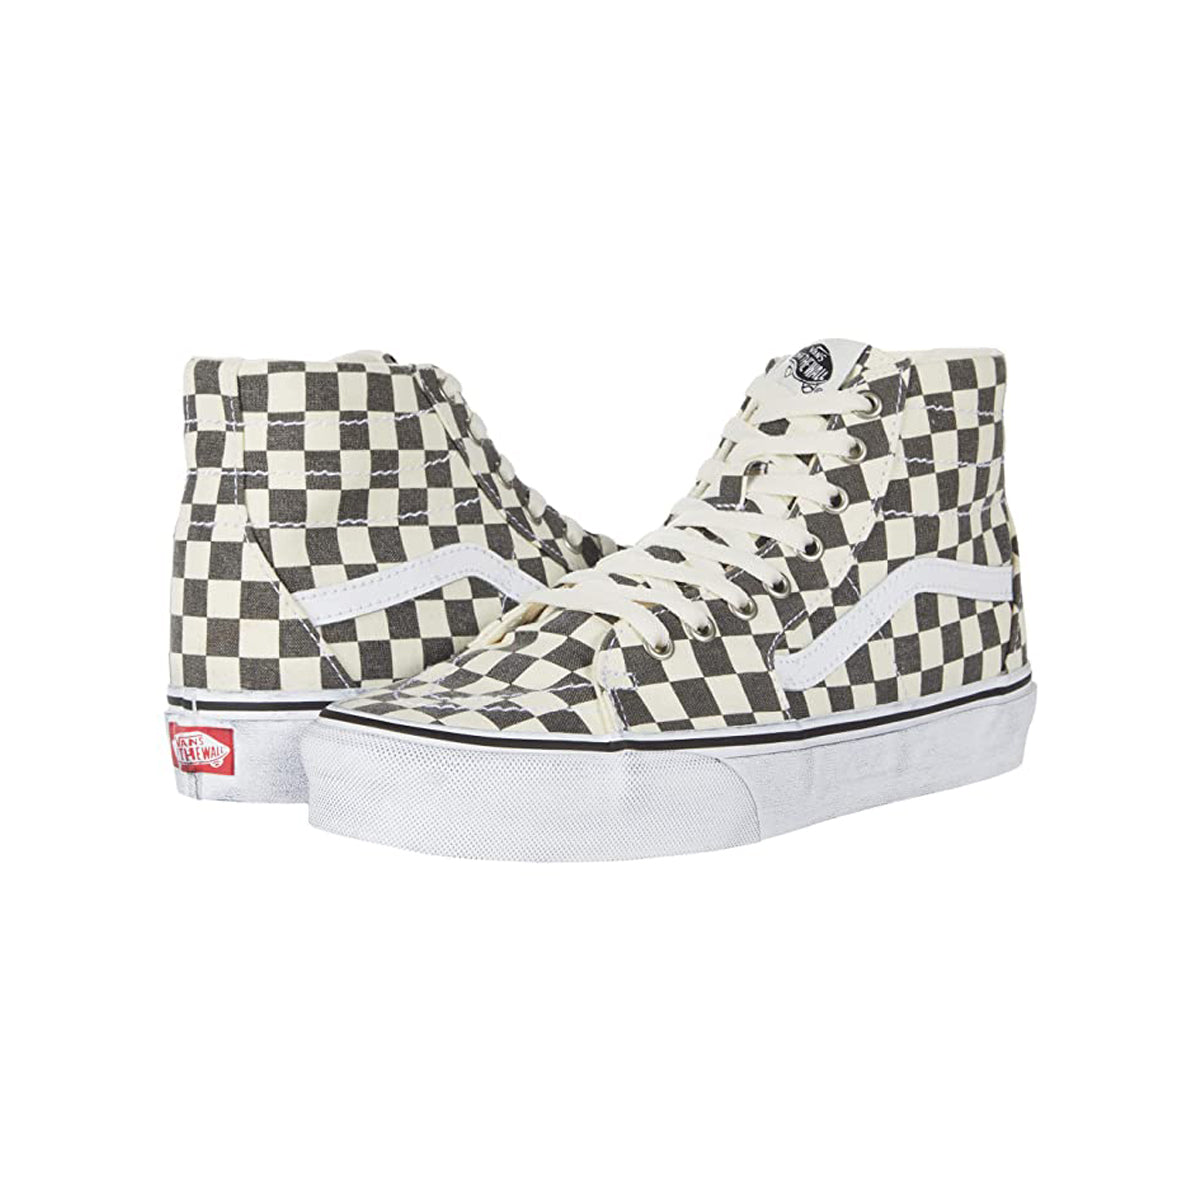 VANS SK8-HI WASHED TAPERED ASPHALT/TRUE WHITE UNISEX SNEAKERS VN0A4U16HQE